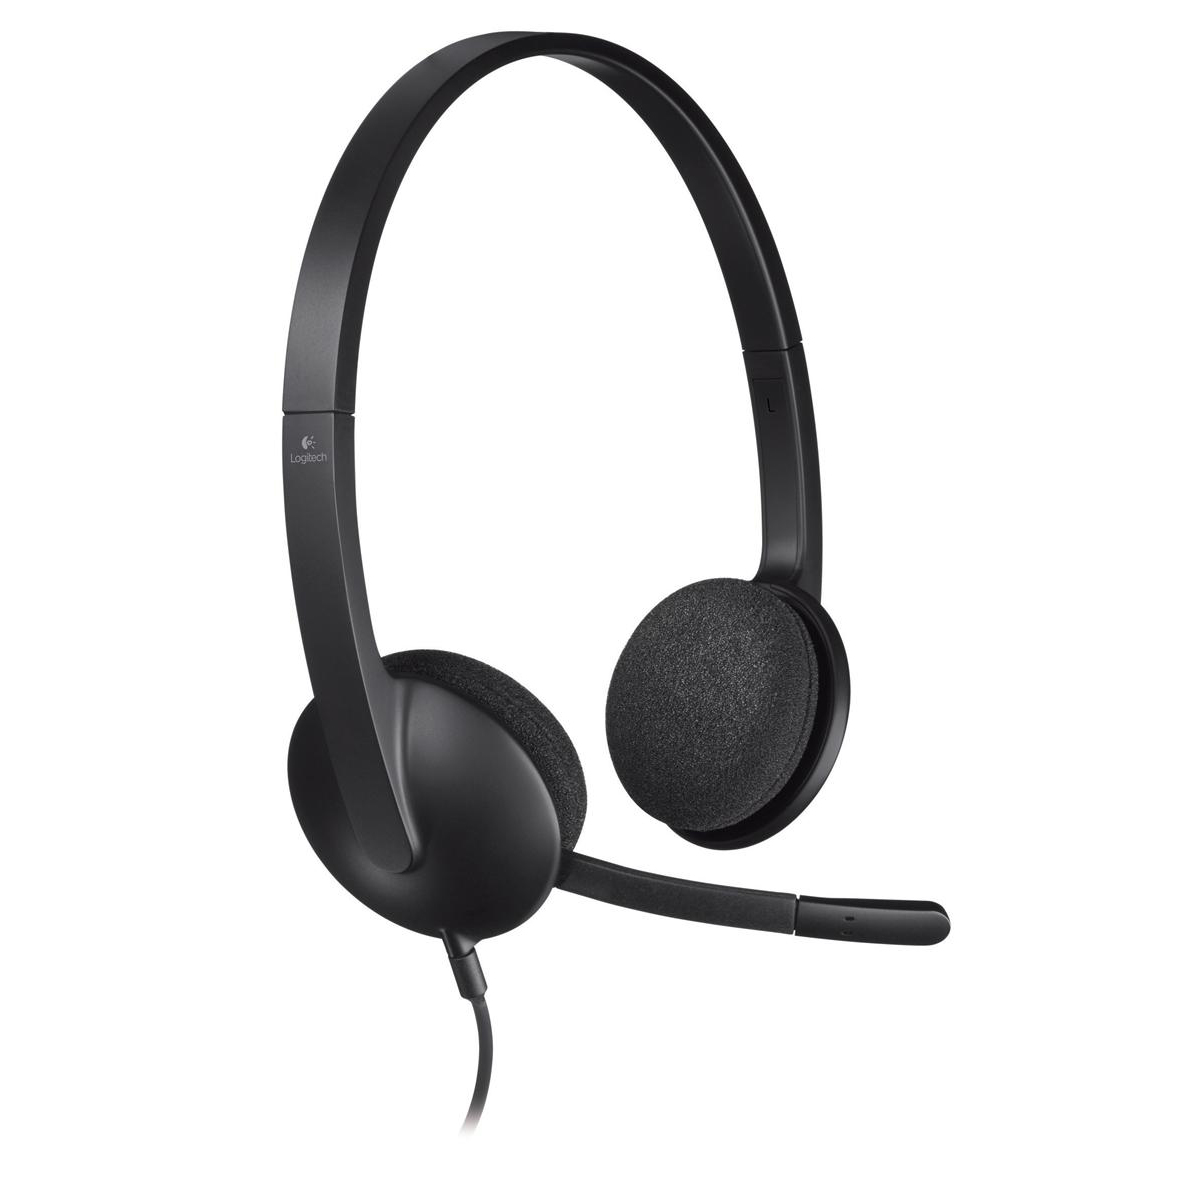 Phone headsets Logitech H340 Headset USB Lightweight with Noise-cancelling Microphone Ref 981-000475